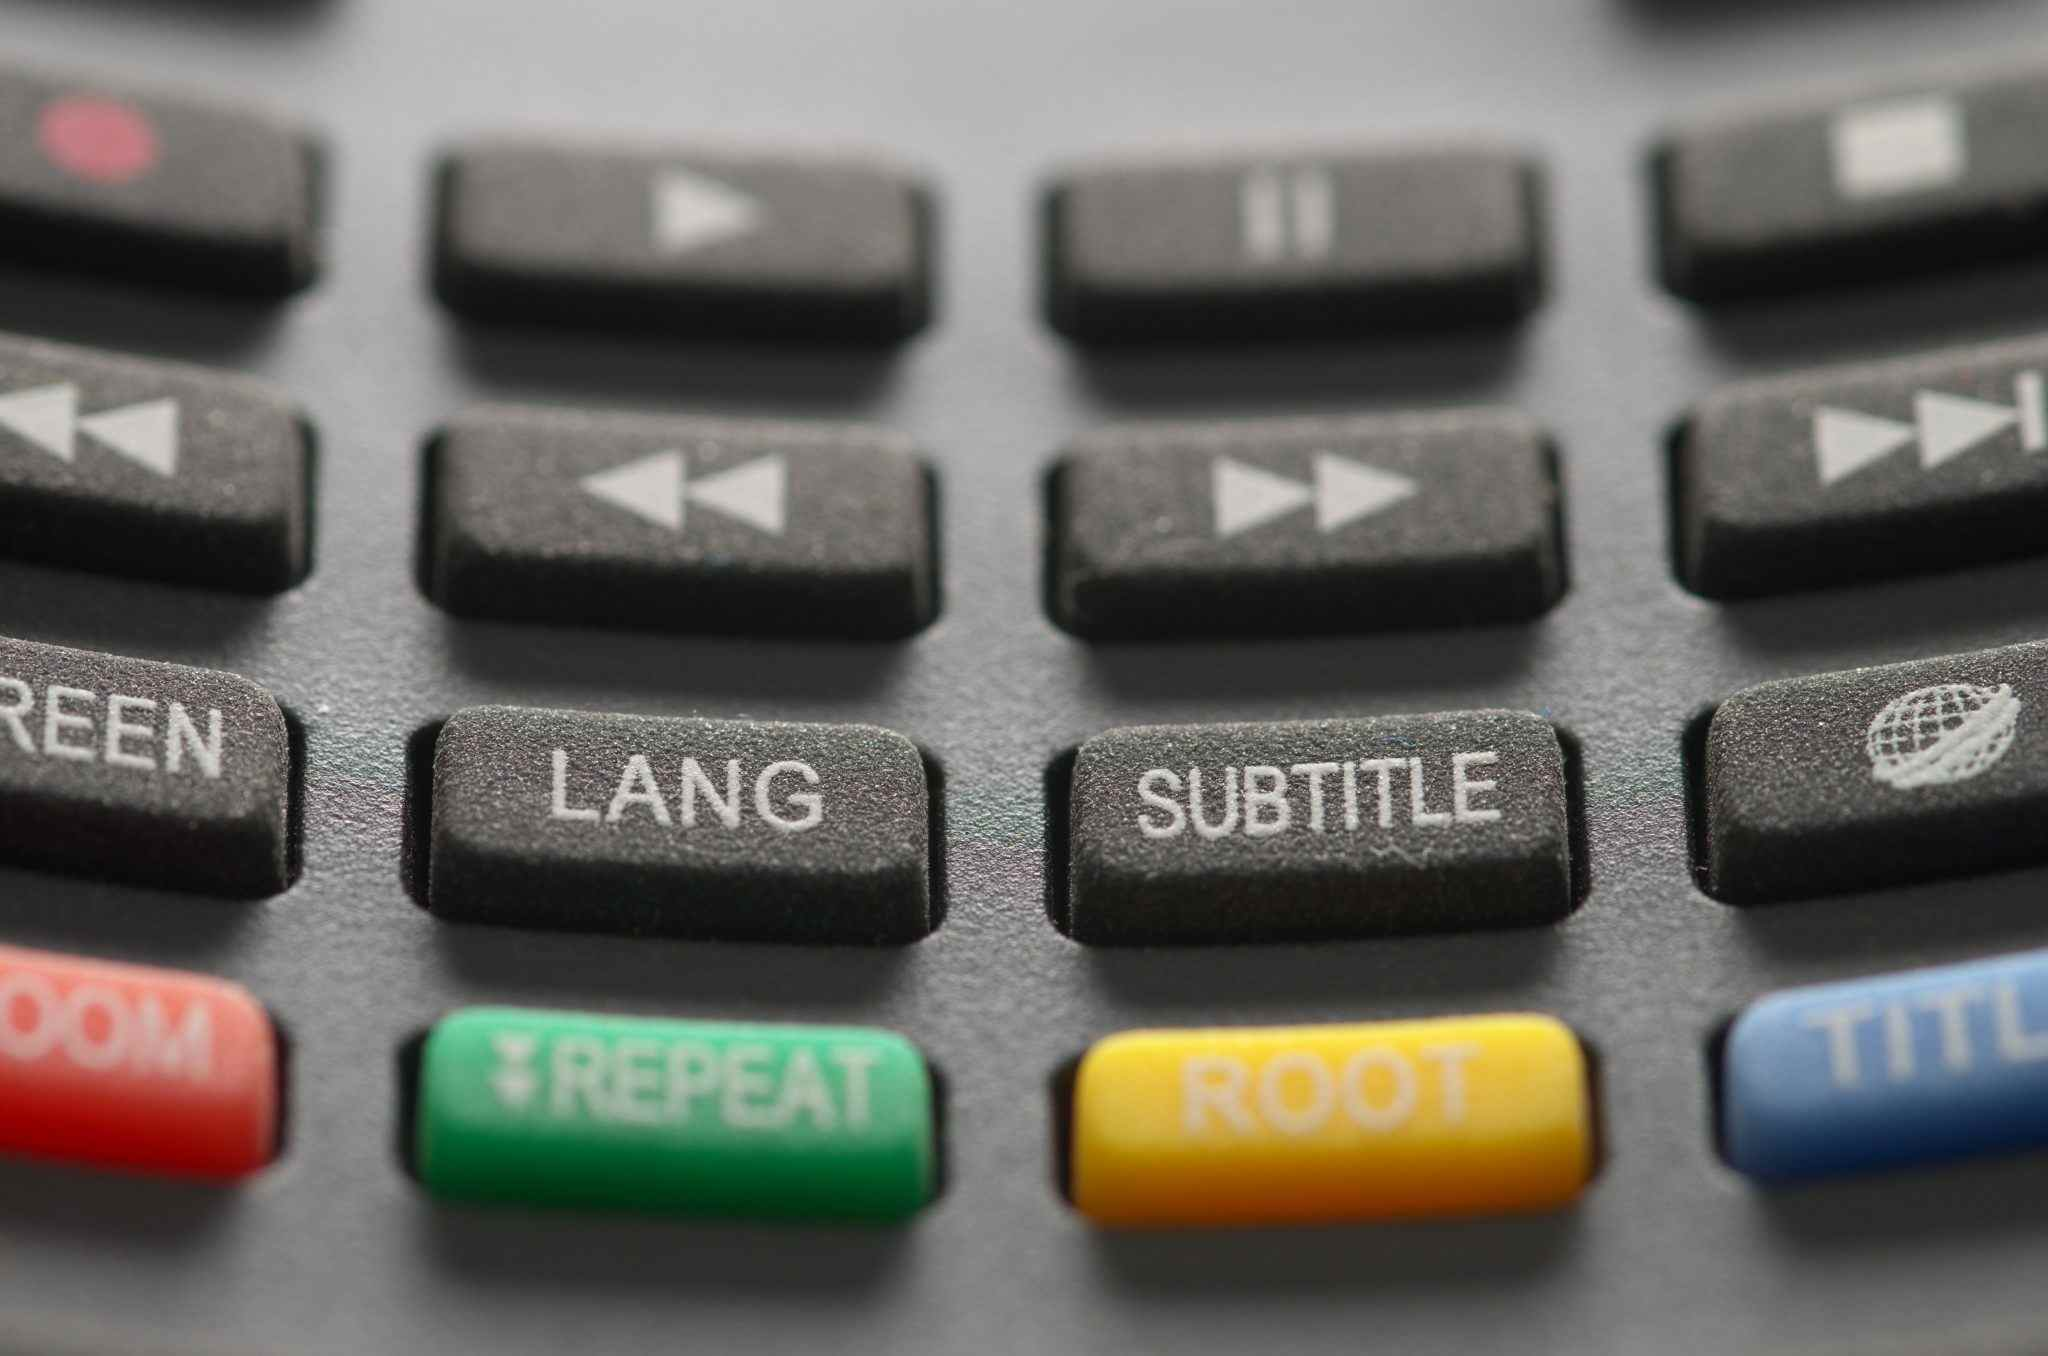 professional-nepali-subtitling-services